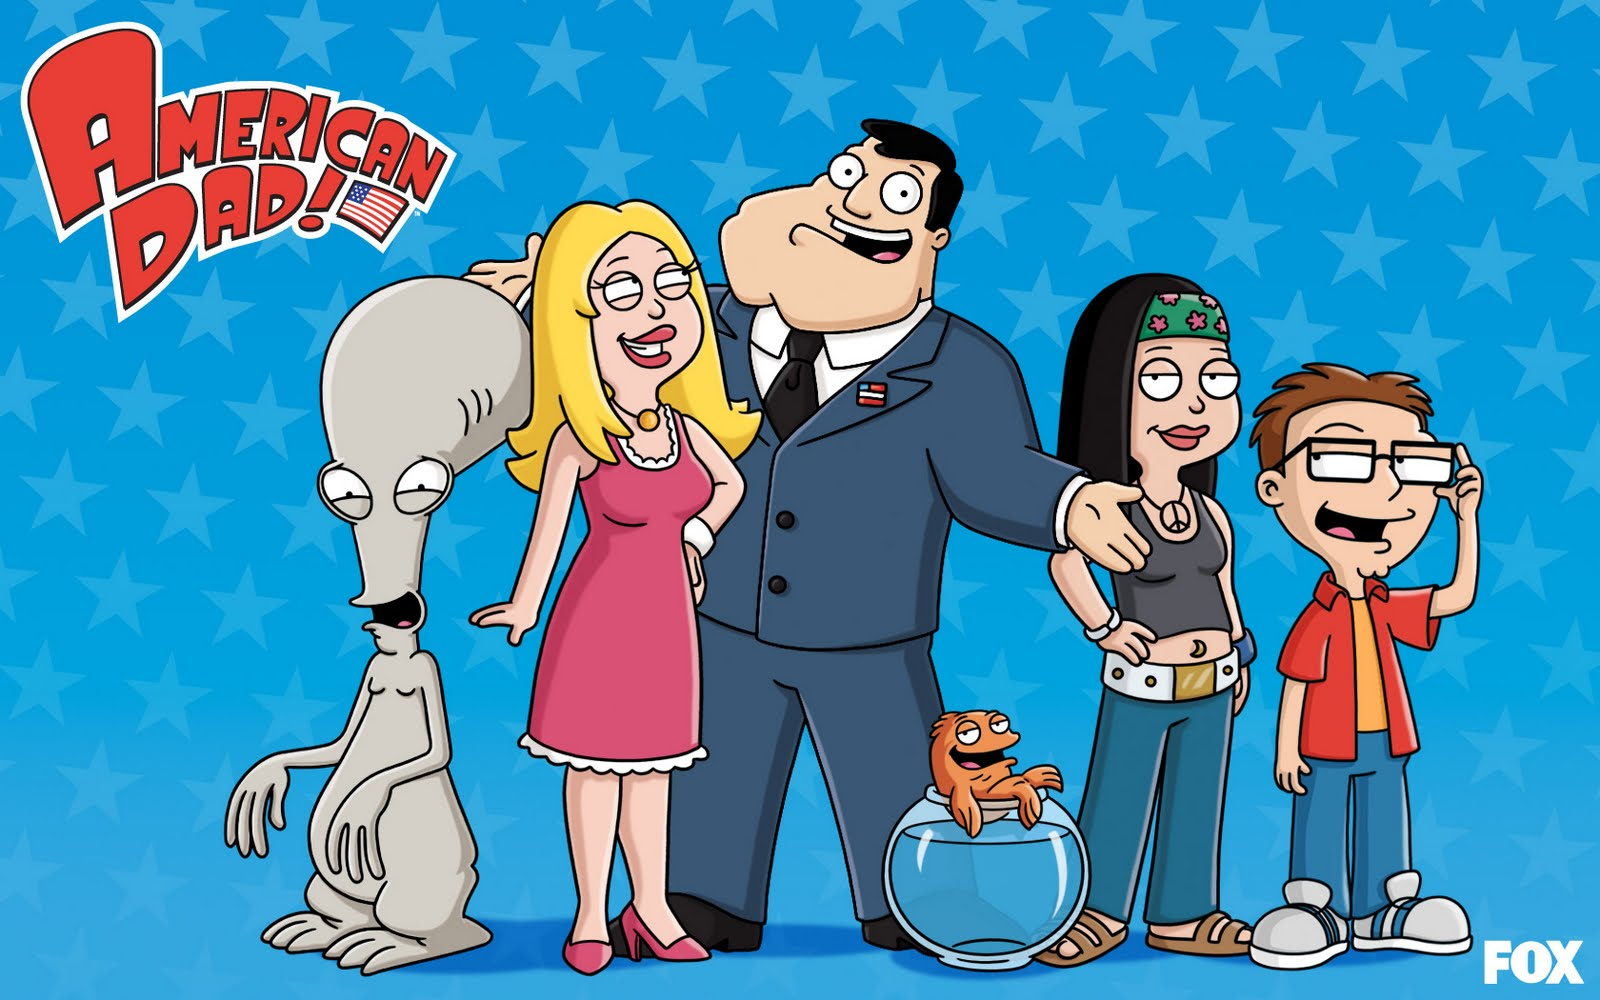 AmericanDad 1680x1050 Family ... your internets shirt to include PORN, so that now it makes more sense: